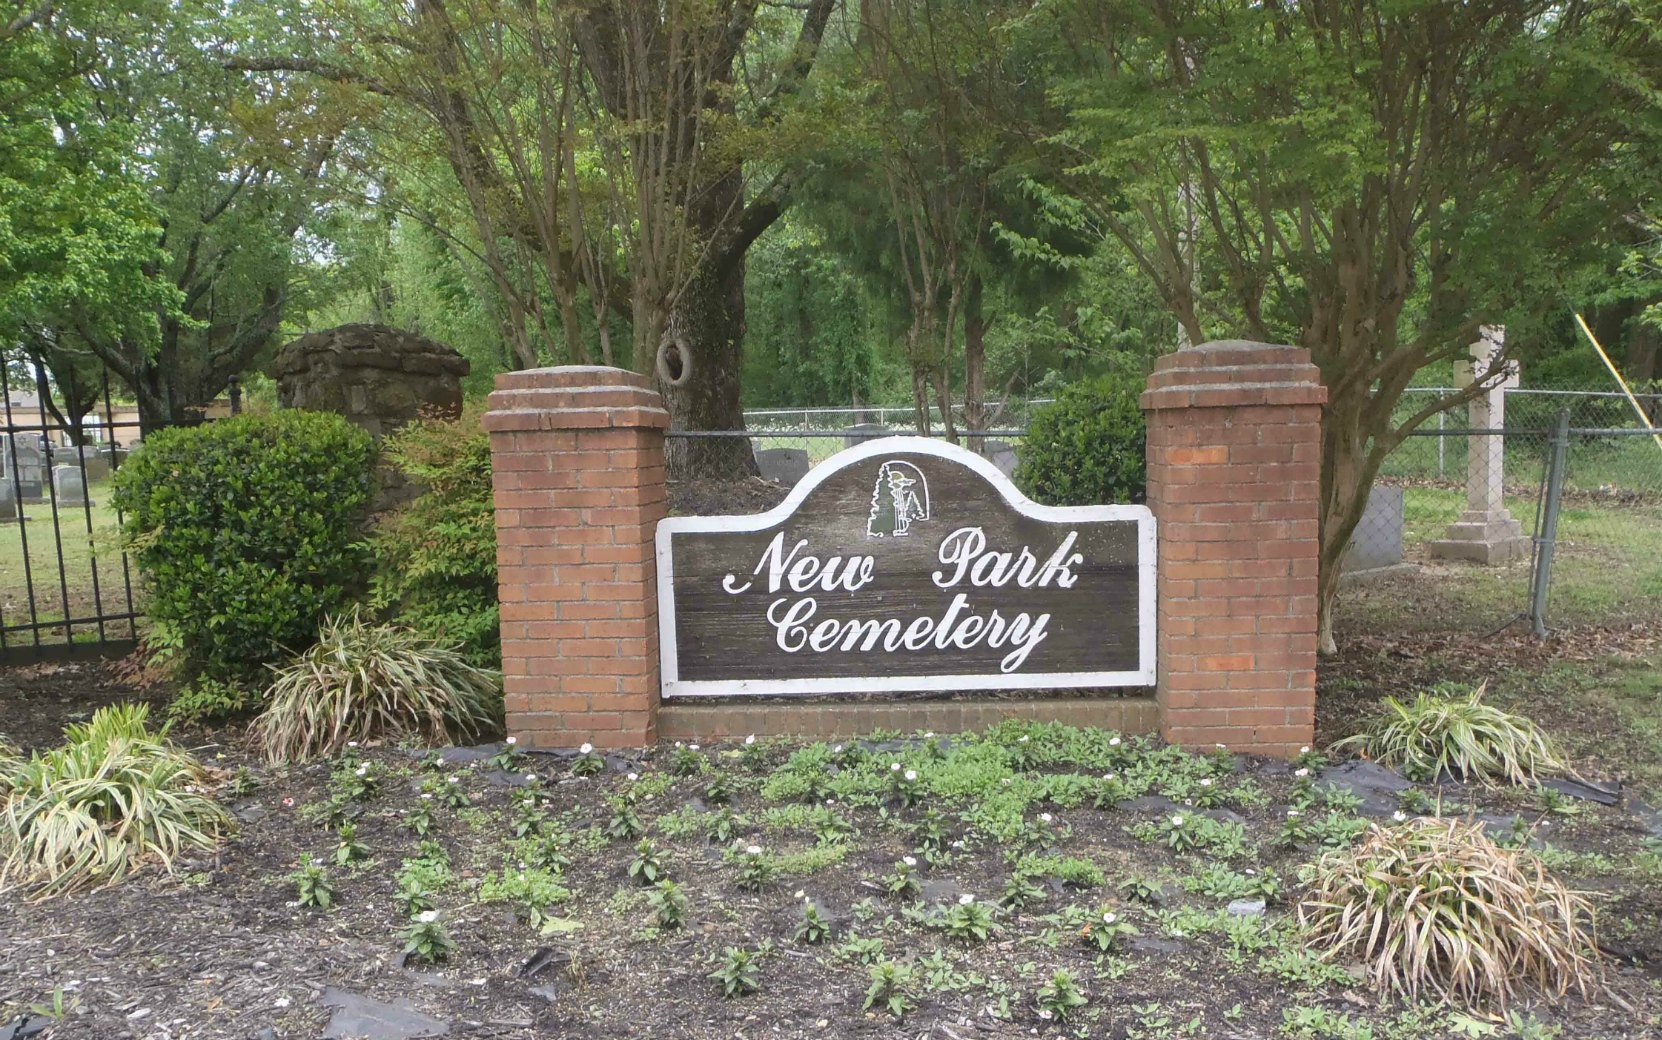 The sign at the entrance gate of New Park Cemetery, Memphis, Tennessee